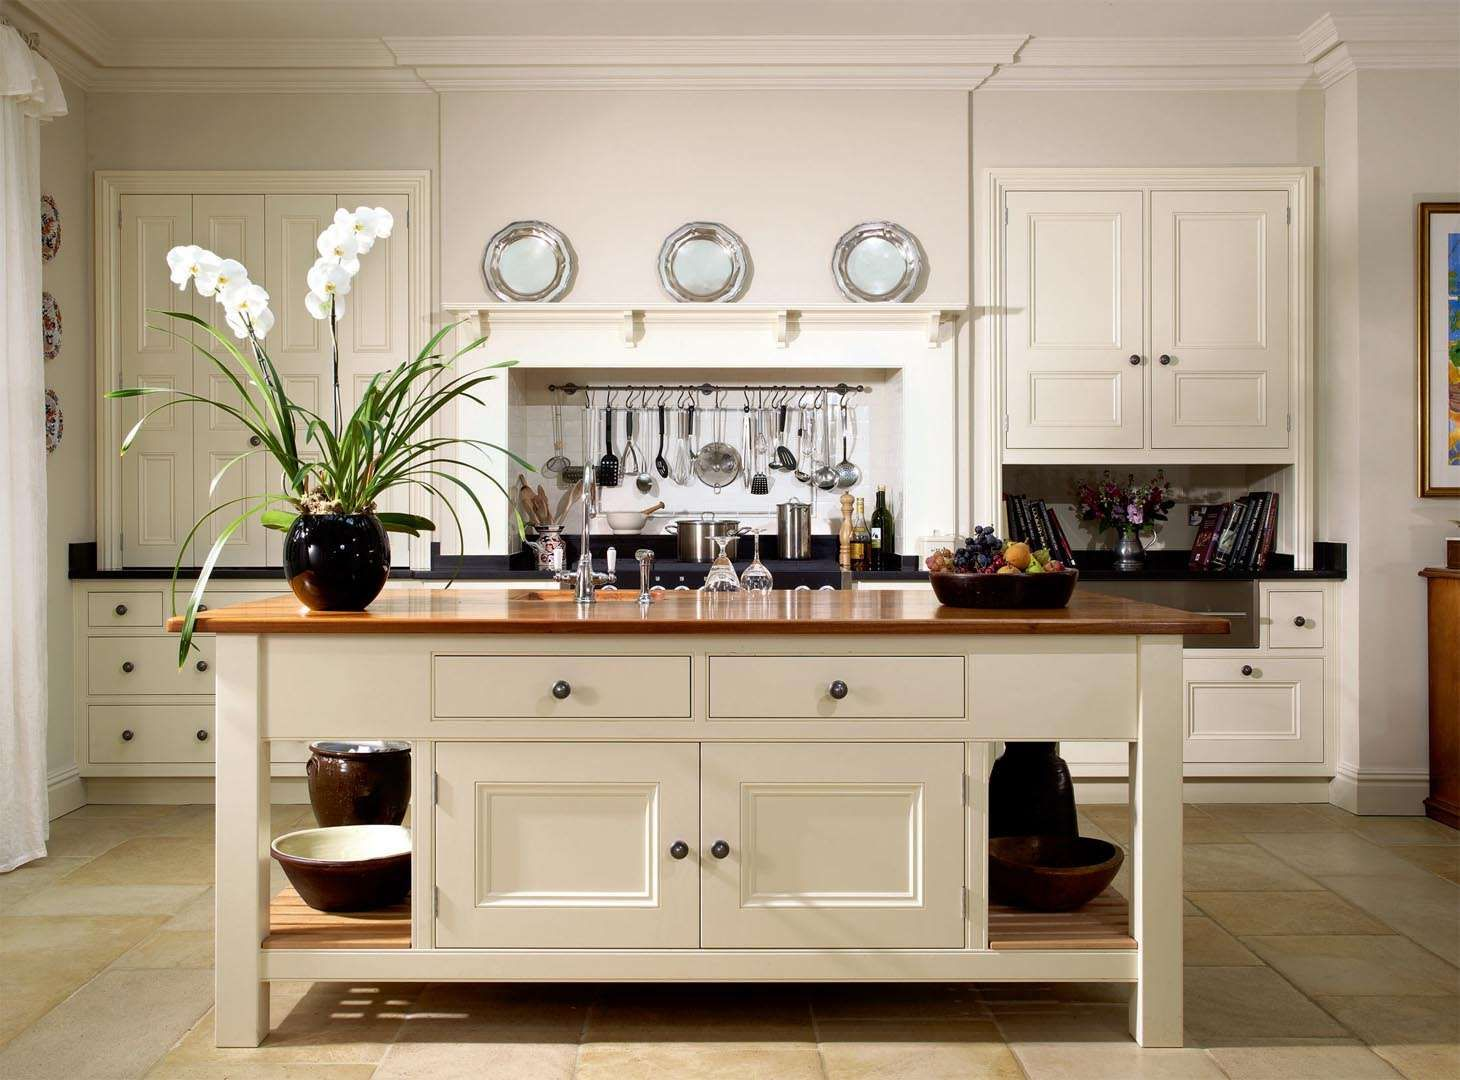 Delicieux Essential Guide To Heritage Kitchens | Period Living